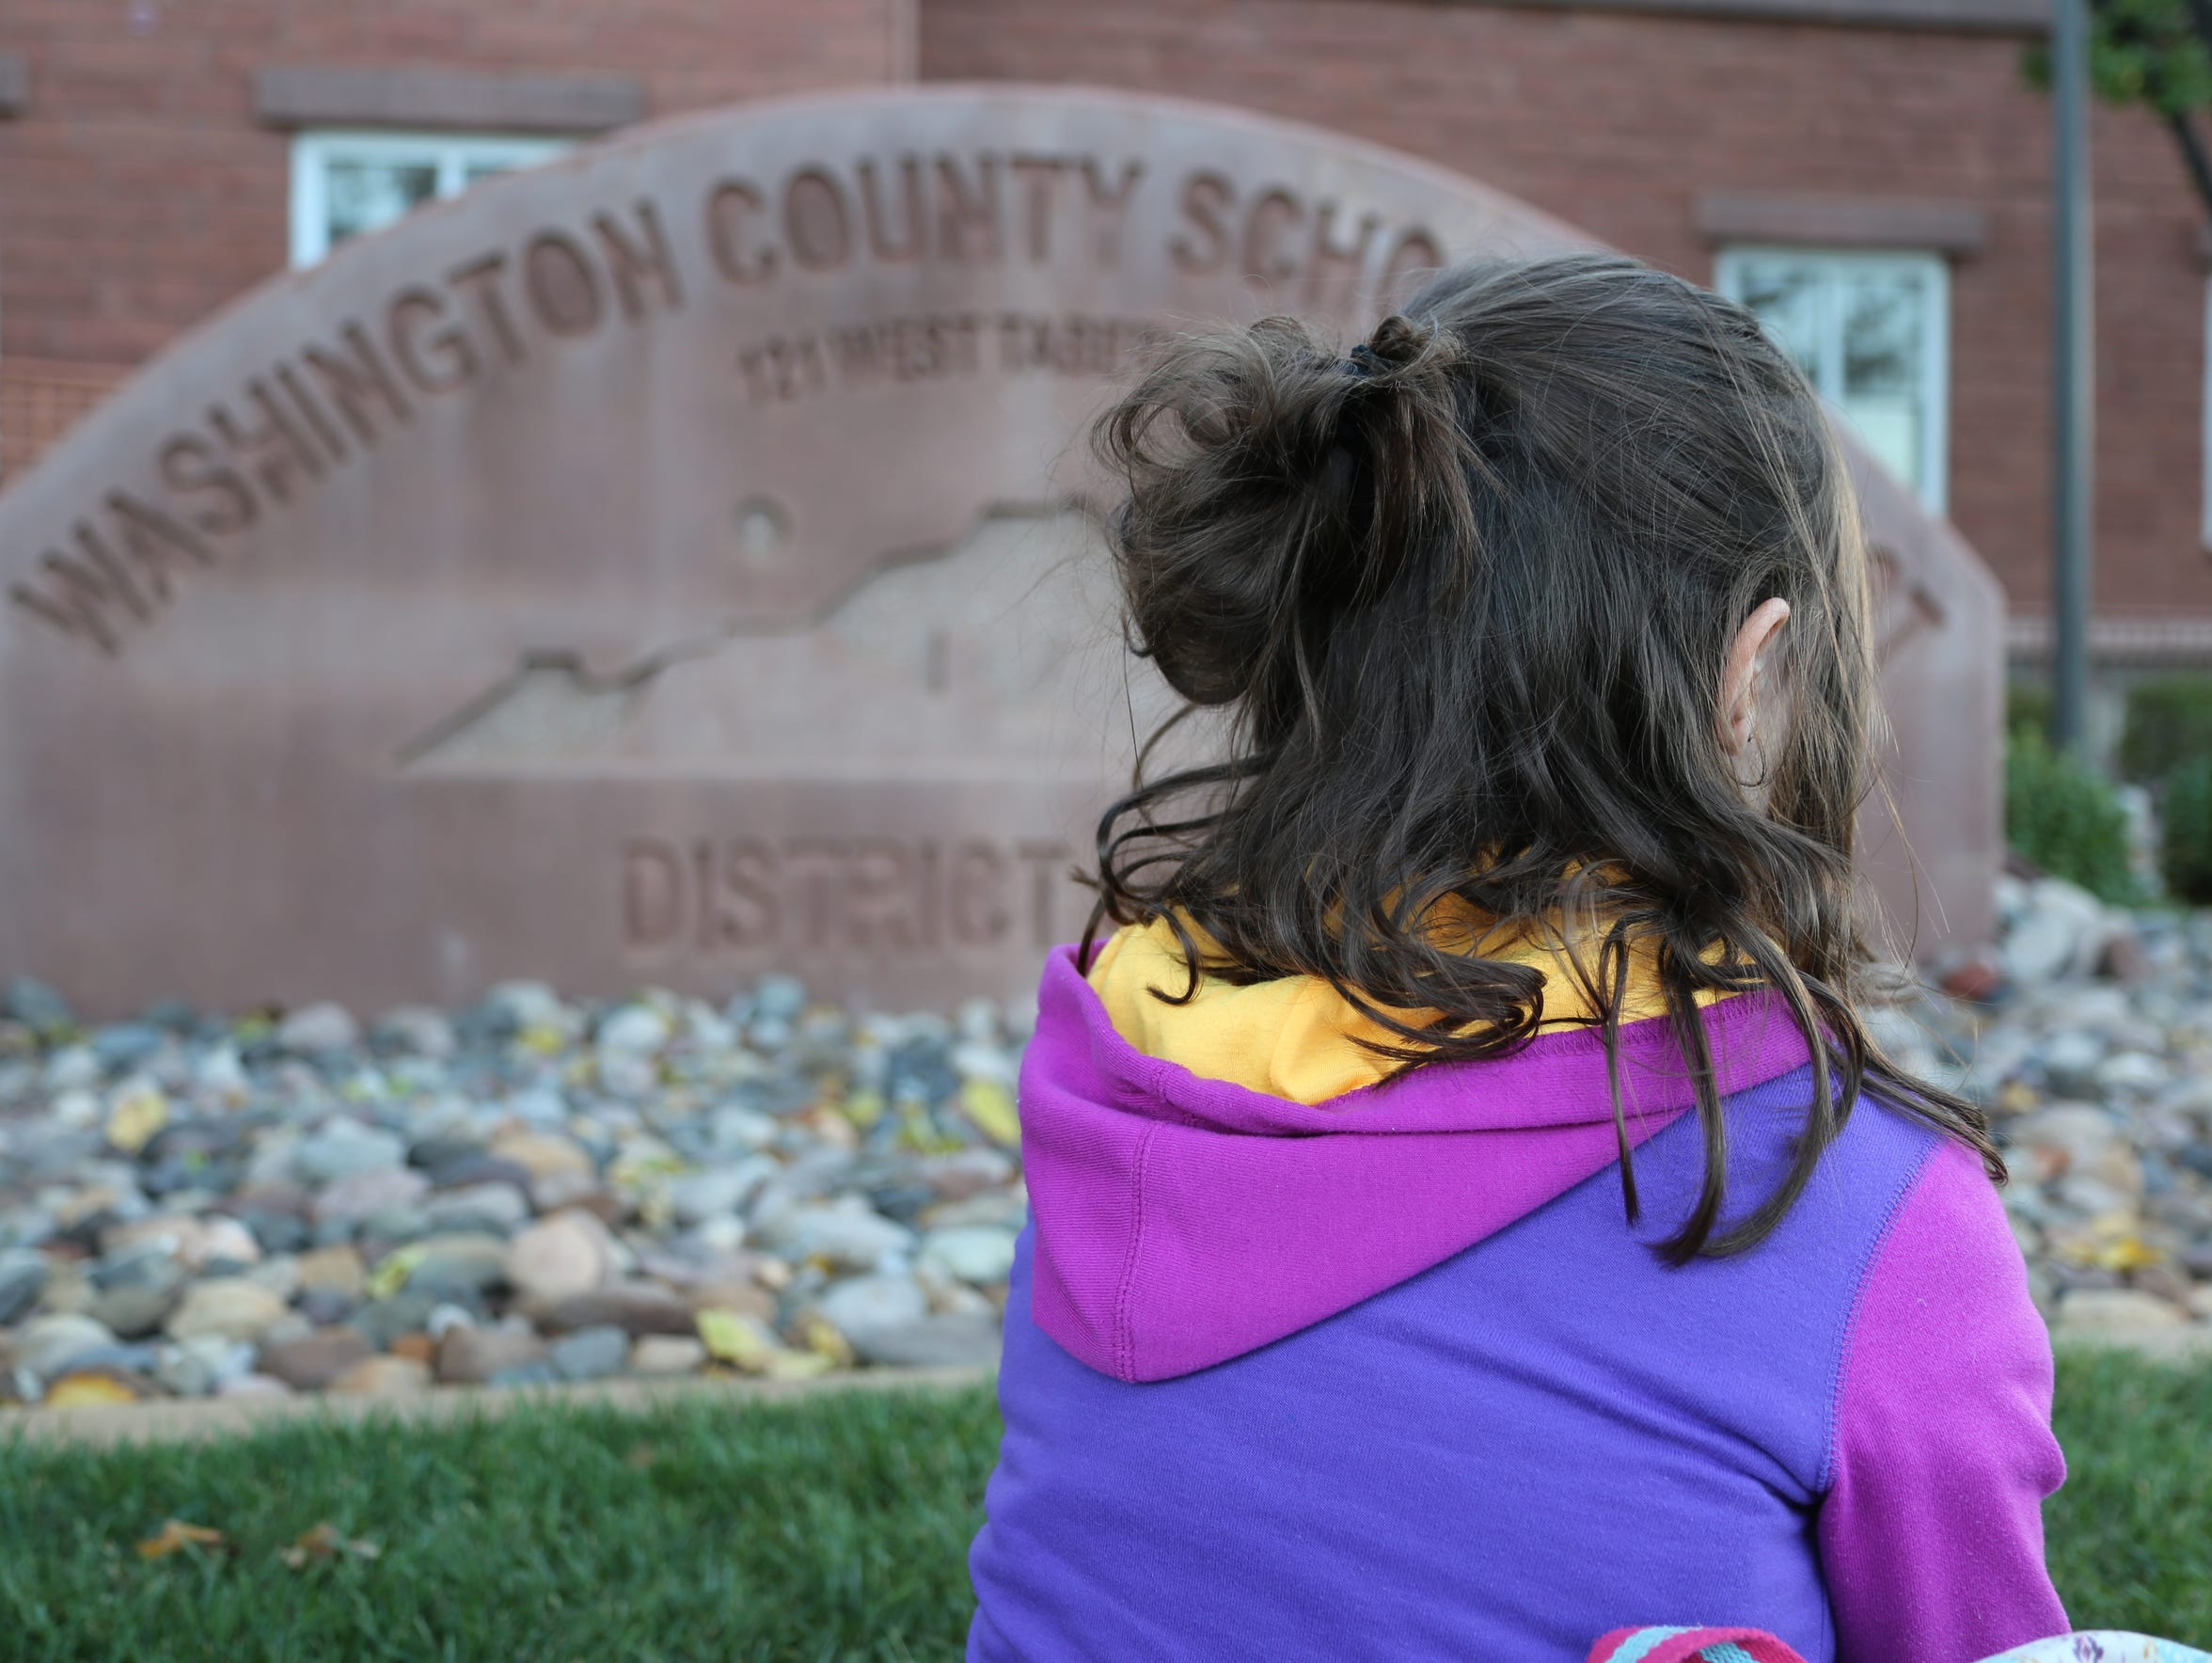 Washington and Iron County School Districts in Southern